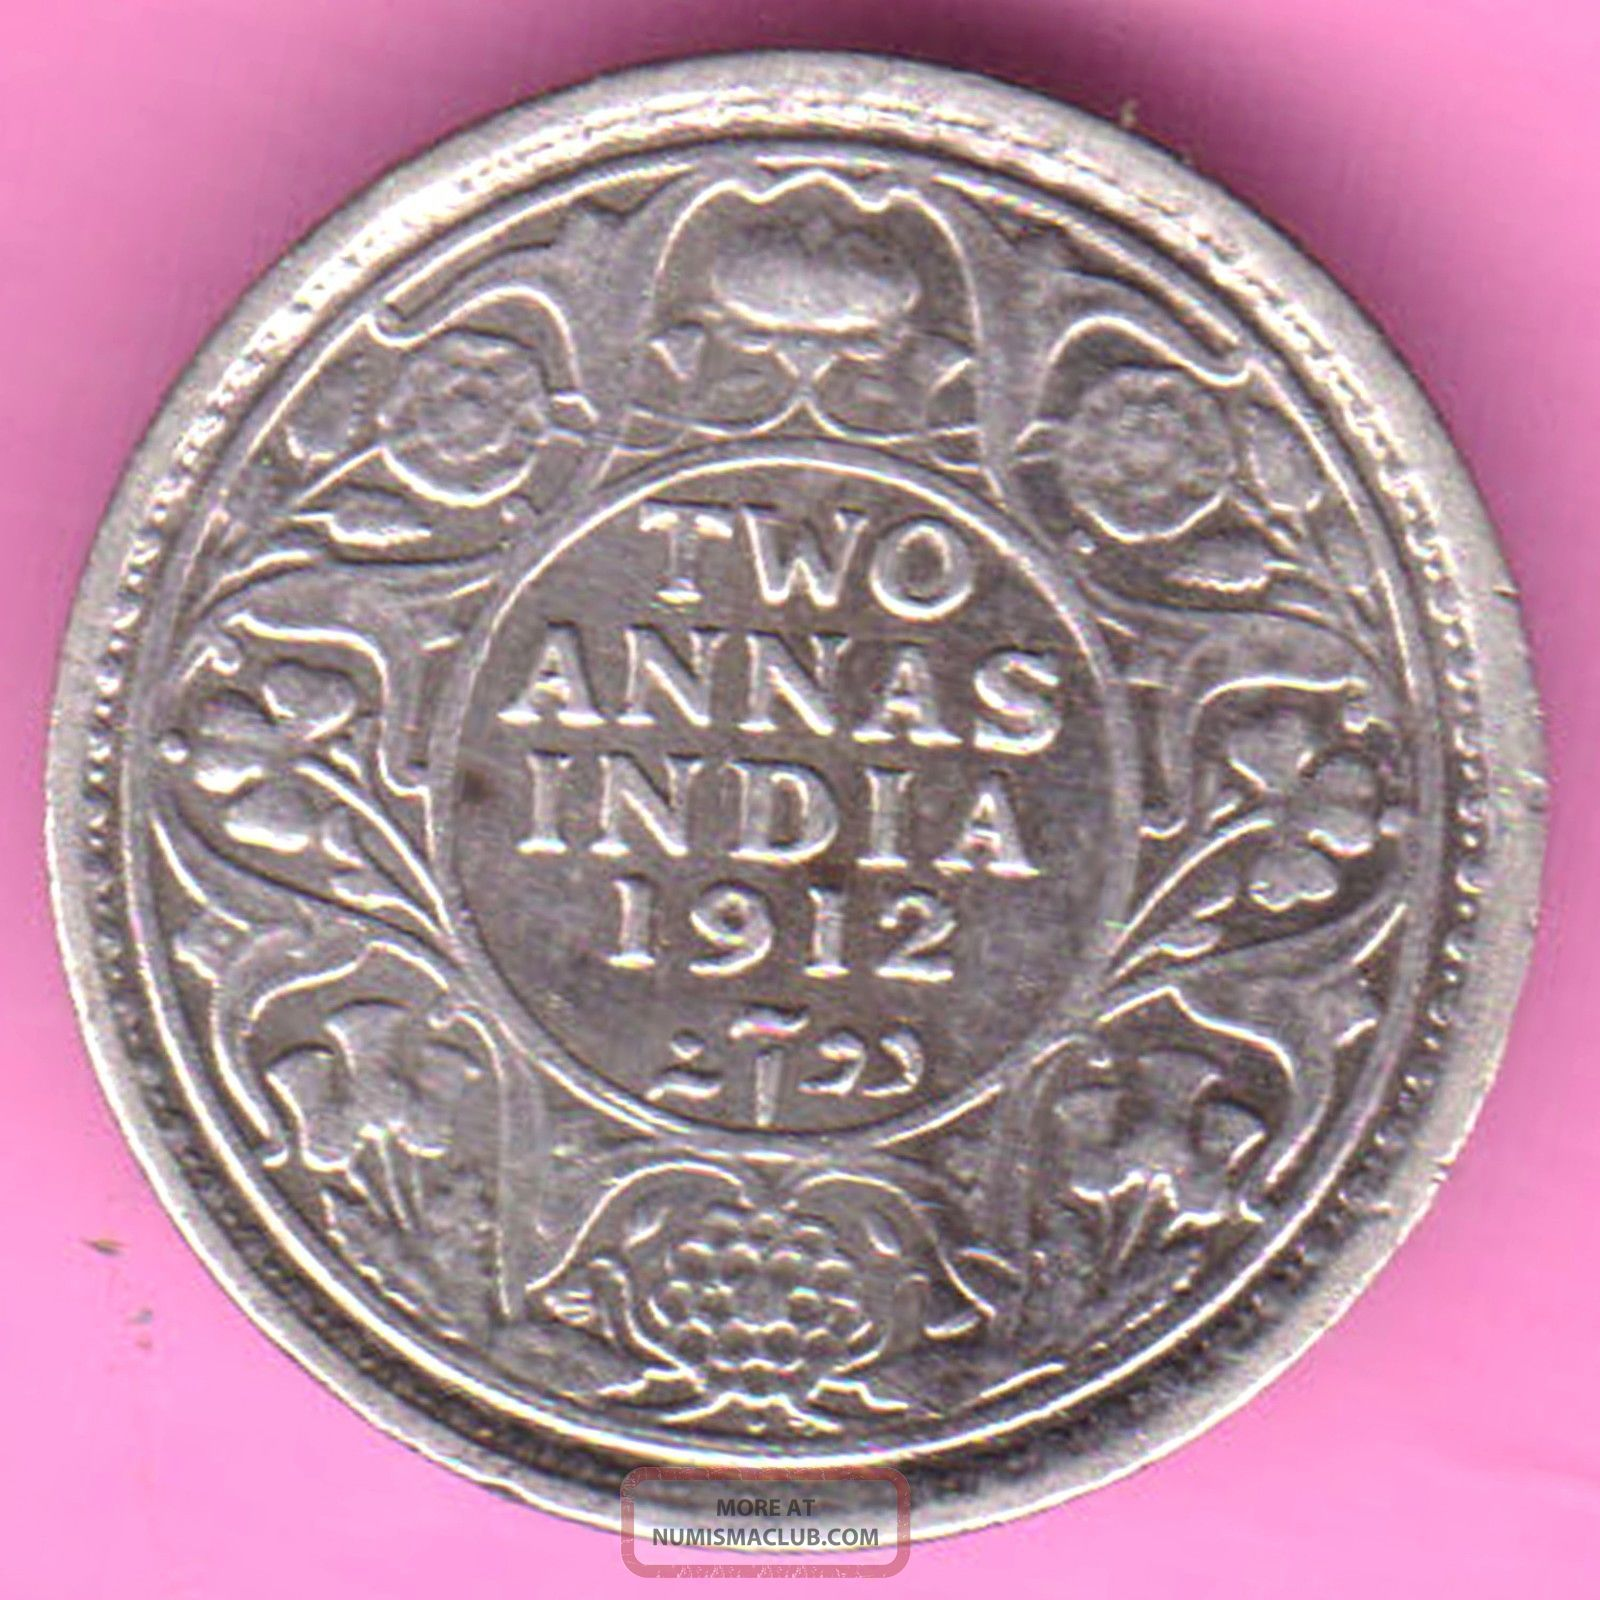 British India - 1912 - Two Annas - King George V - Rarest Silver Coin - 46 India photo